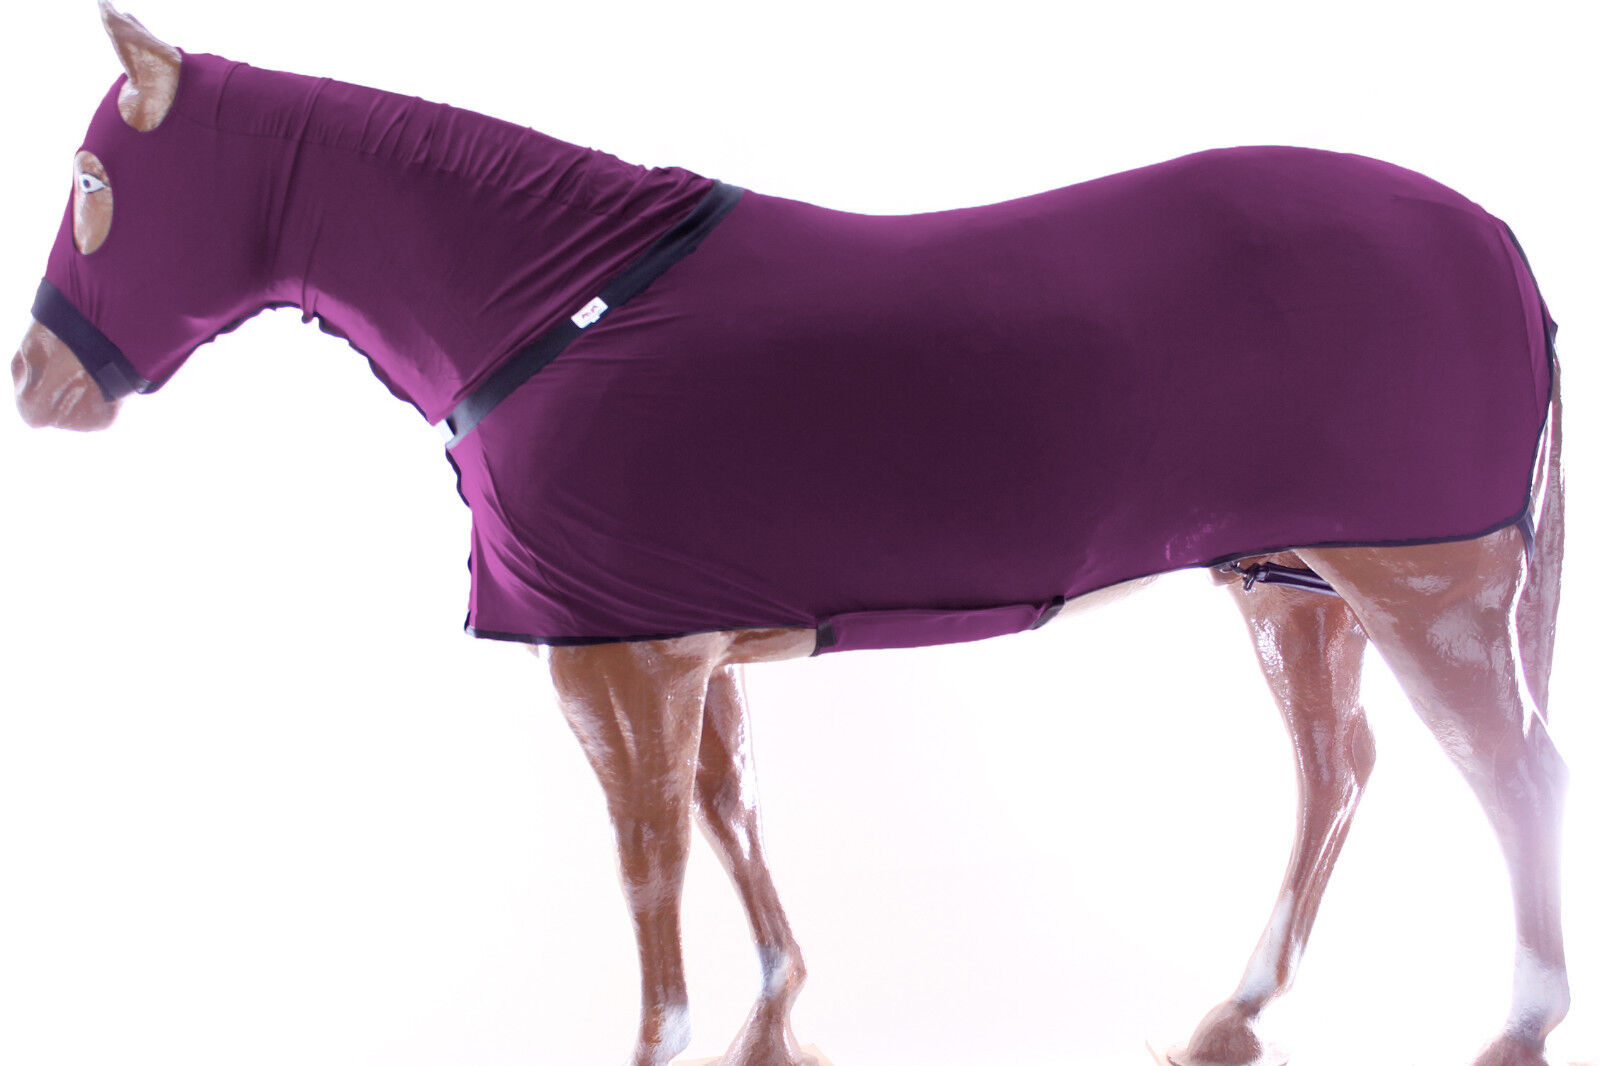 Horse Full All Body Zippered Lycra Slinky  Stretch Fabric Suit purple  Medium  no minimum